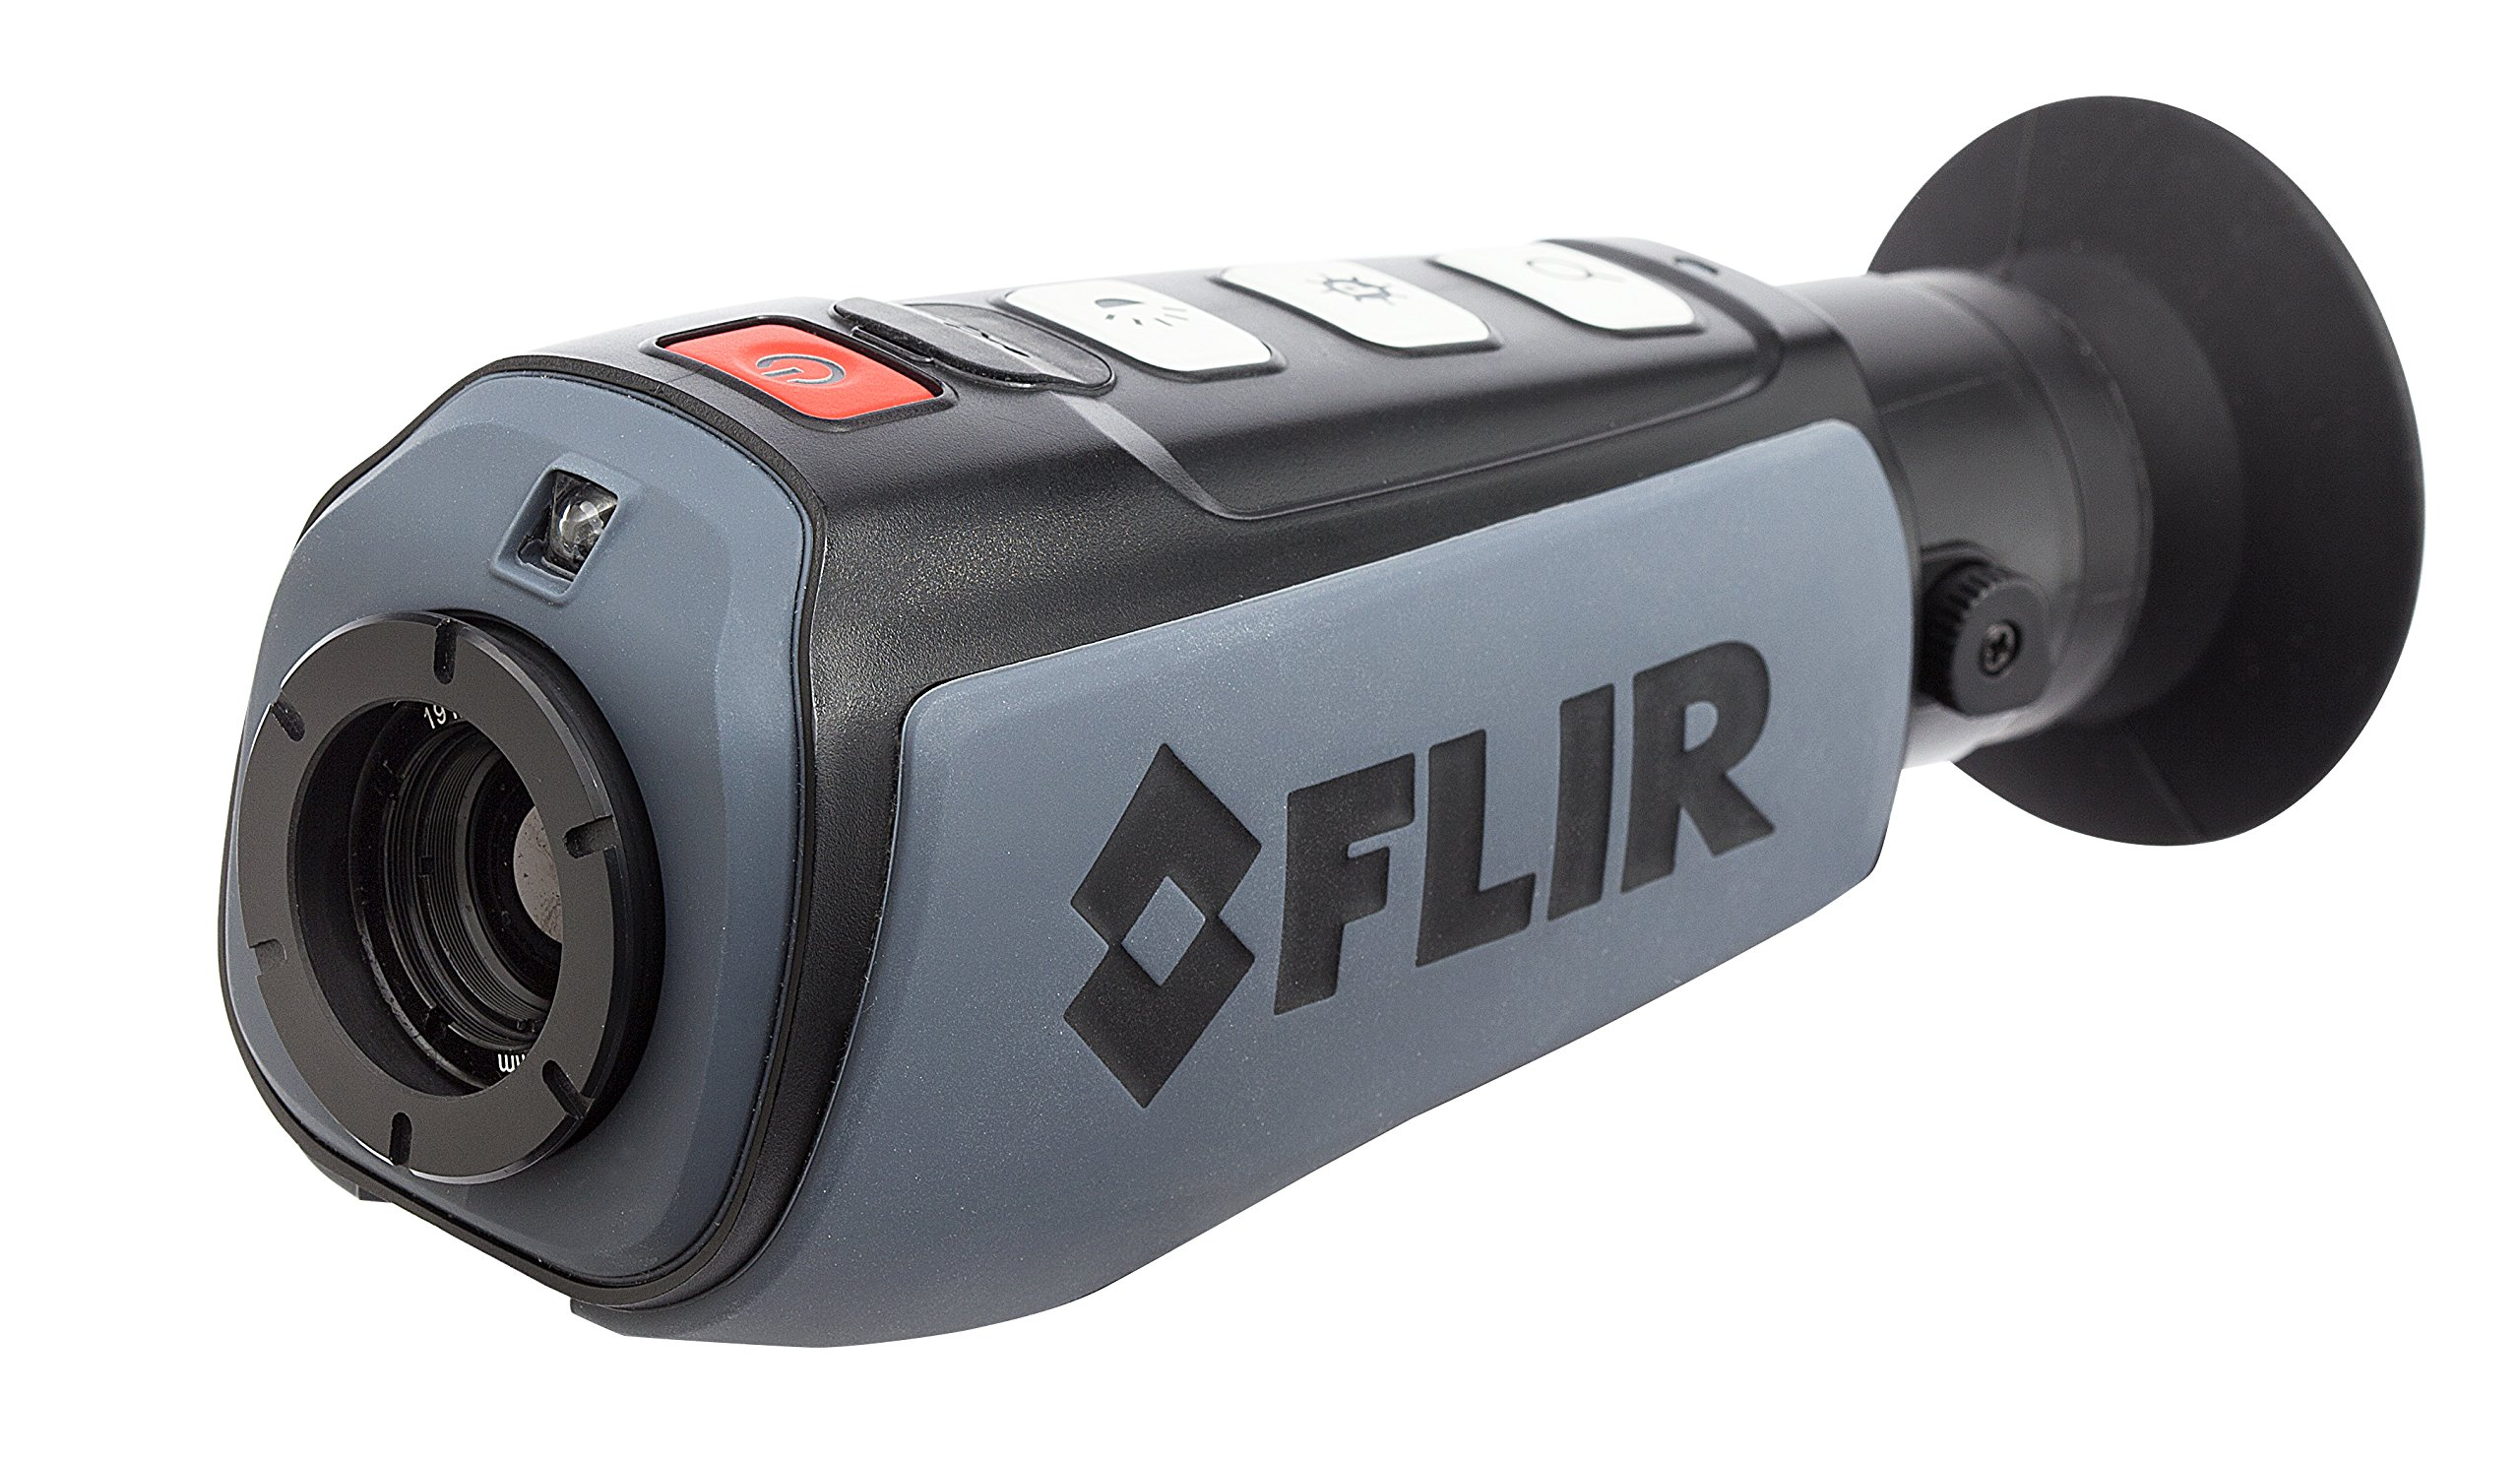 FLIR 320 Ocean Scout Night Vision Camera, Dark Gray by FLIR